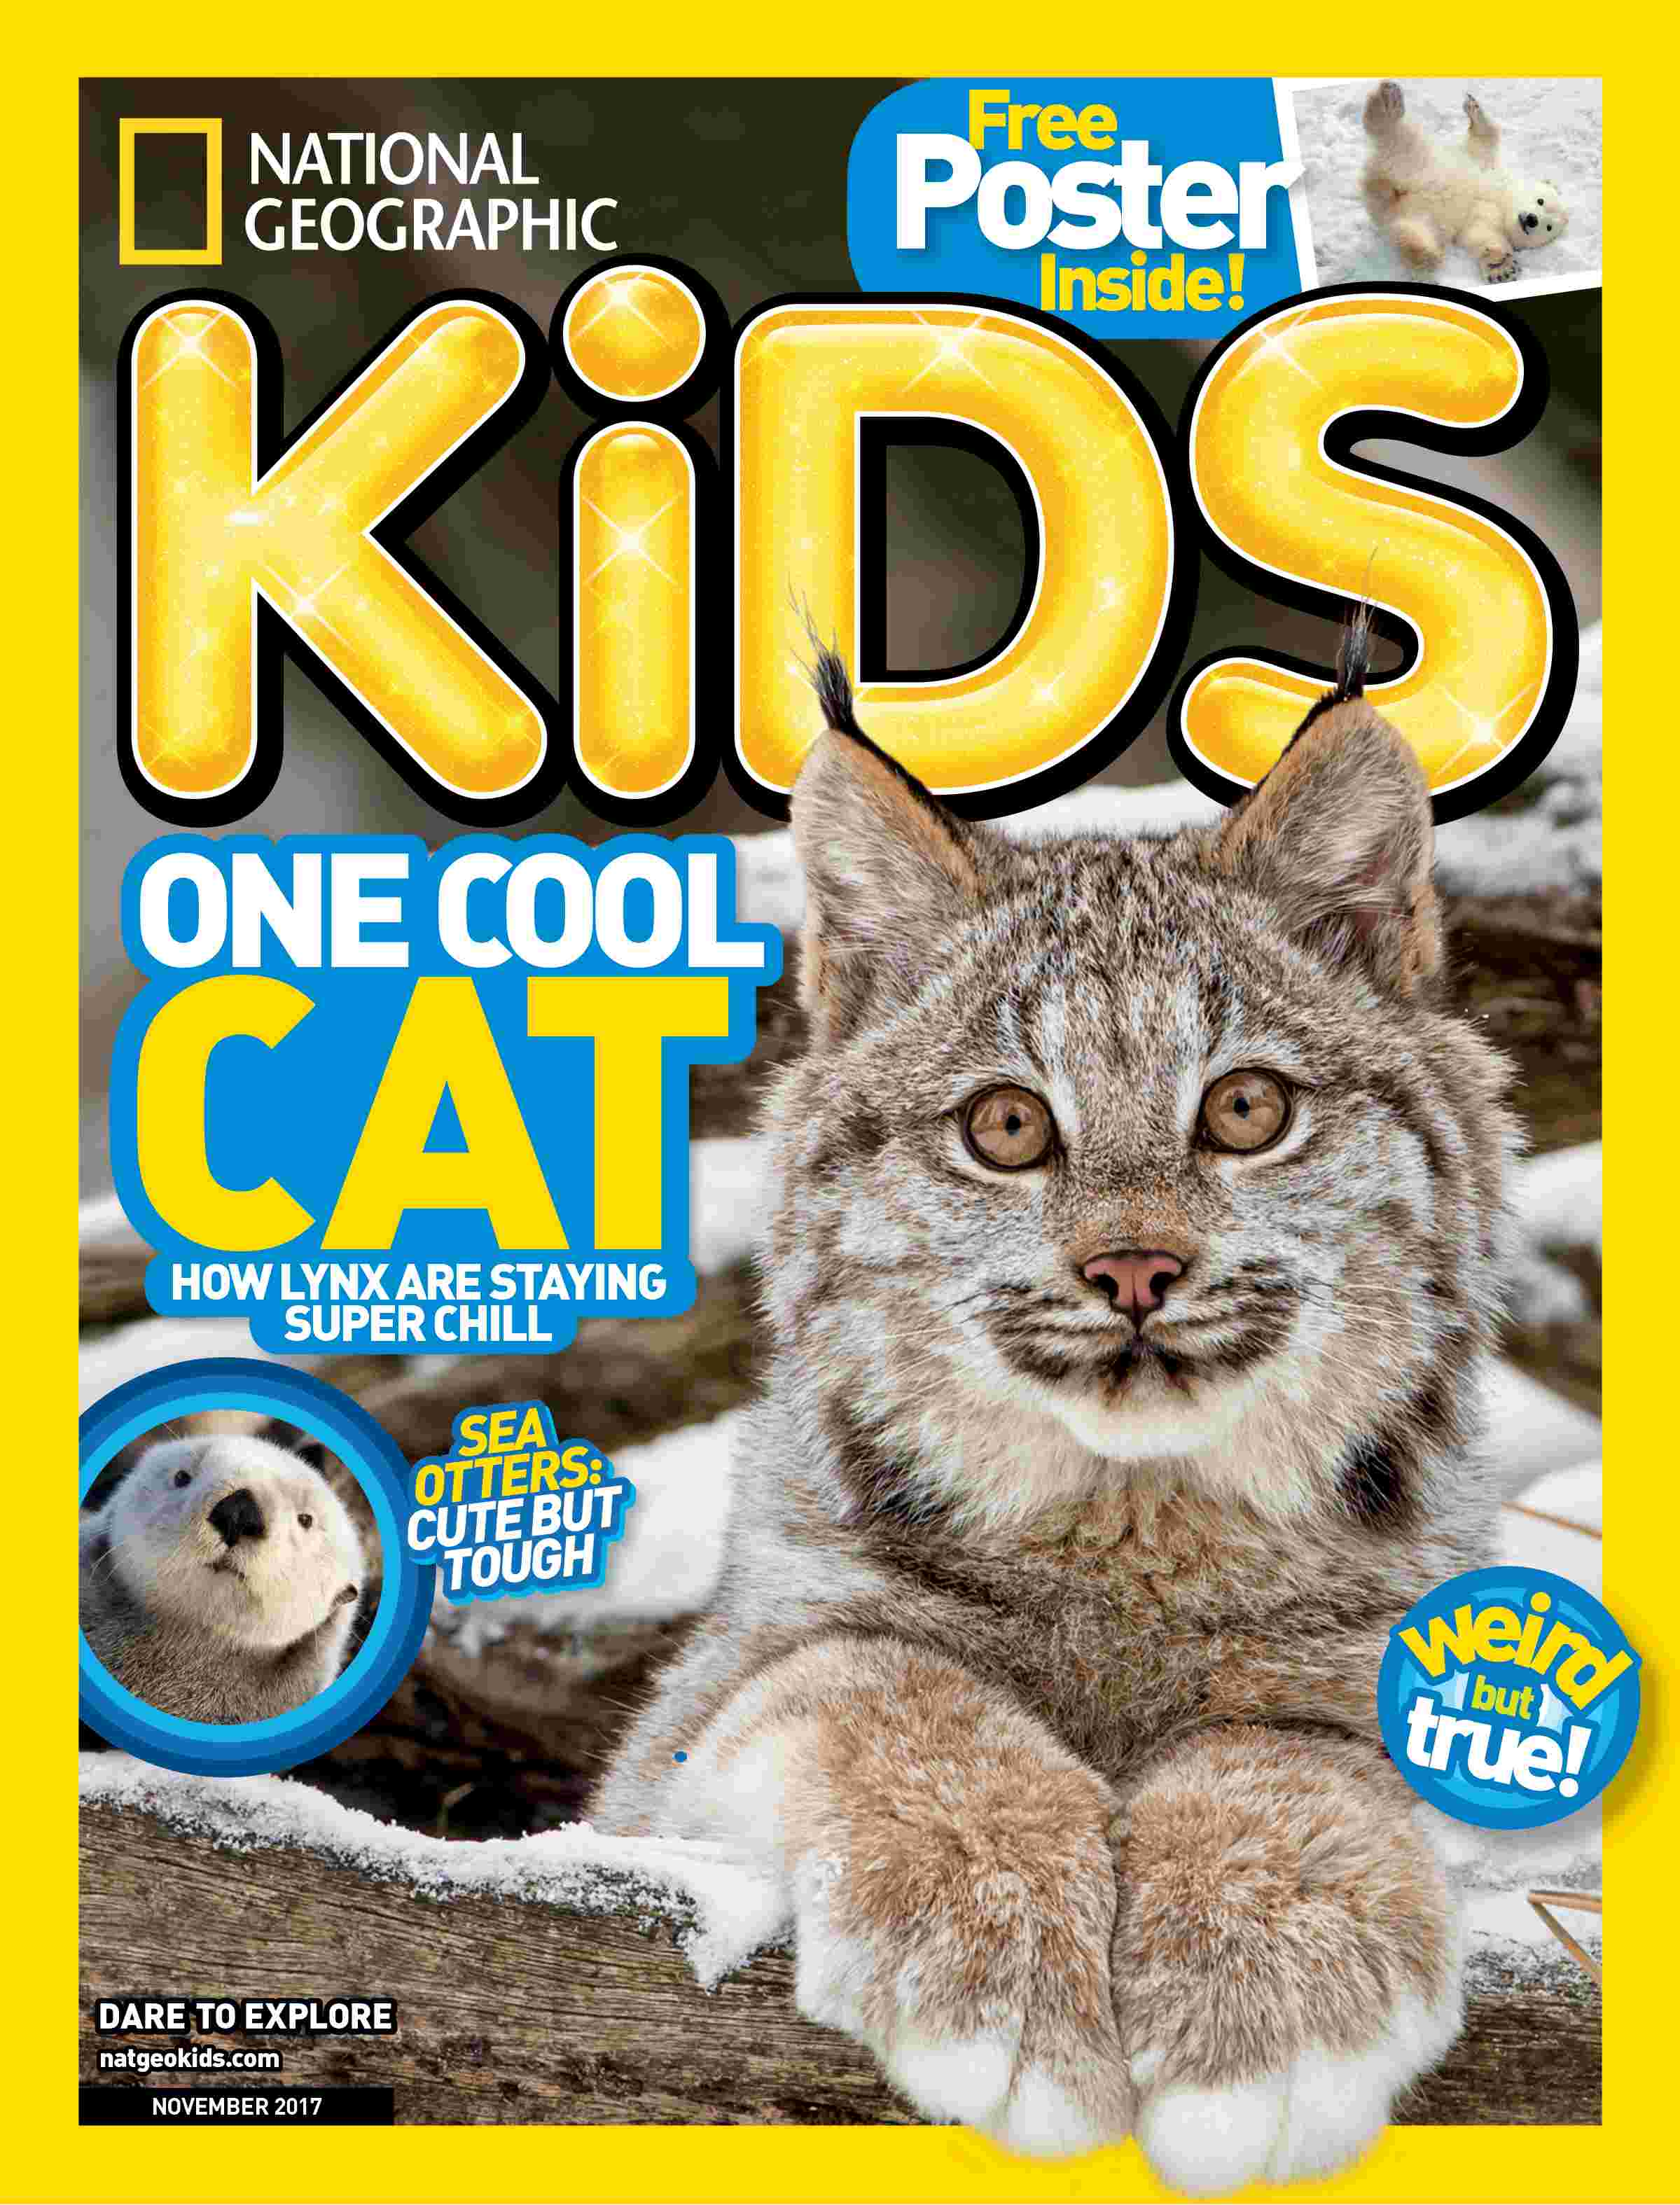 National Geographic Kids: magazine. : One cool cat